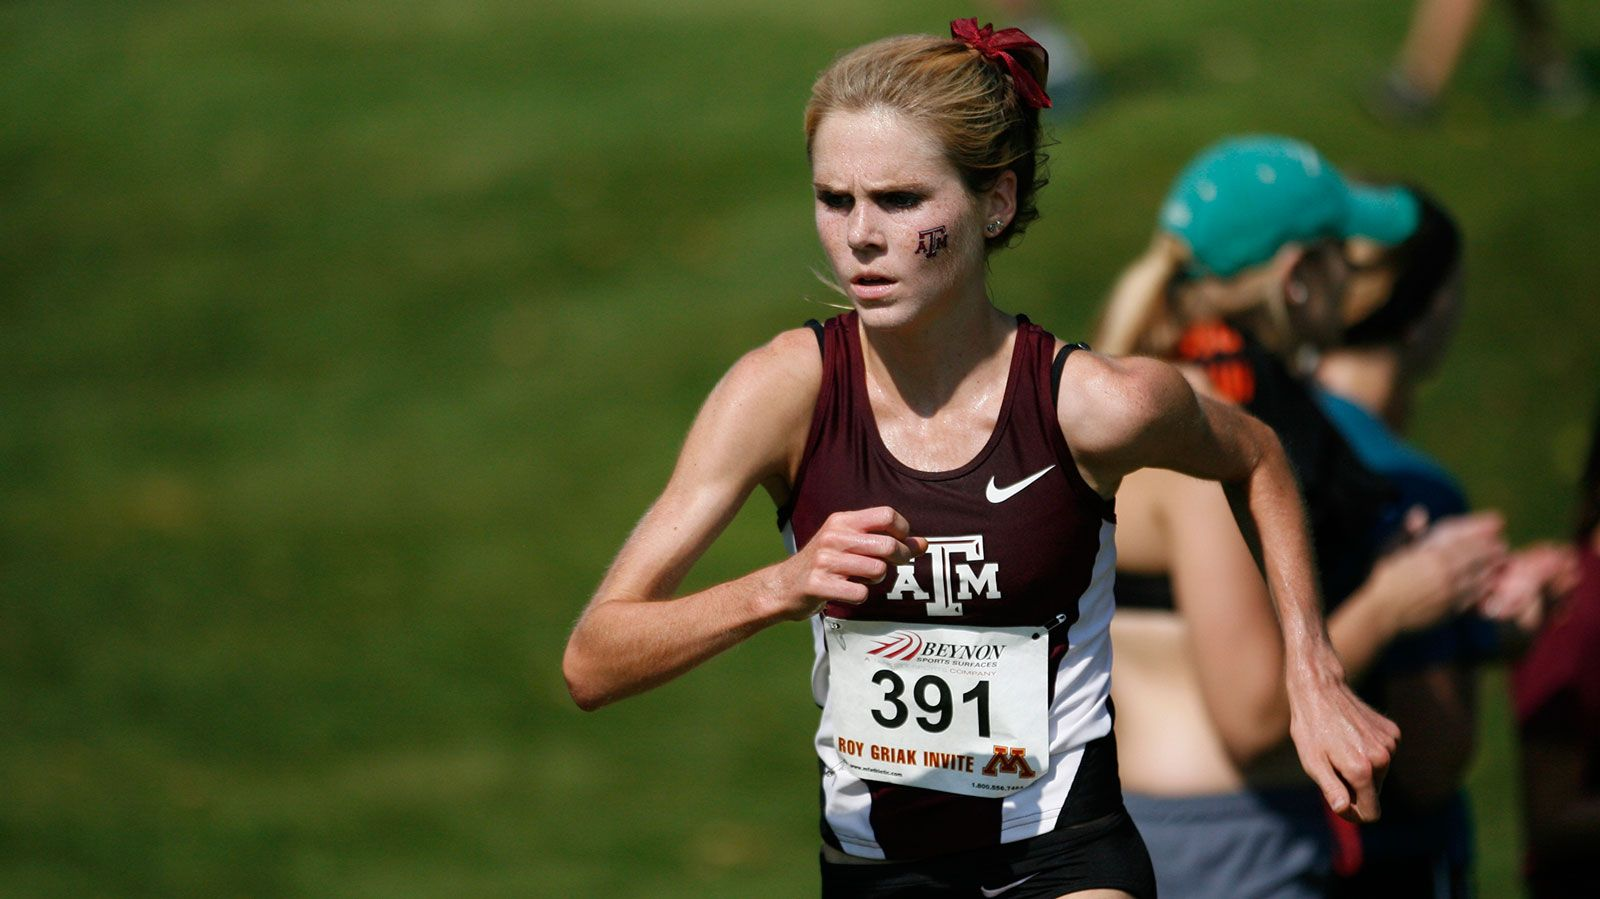 Sec Teams Compete At Roy Griak Invitational